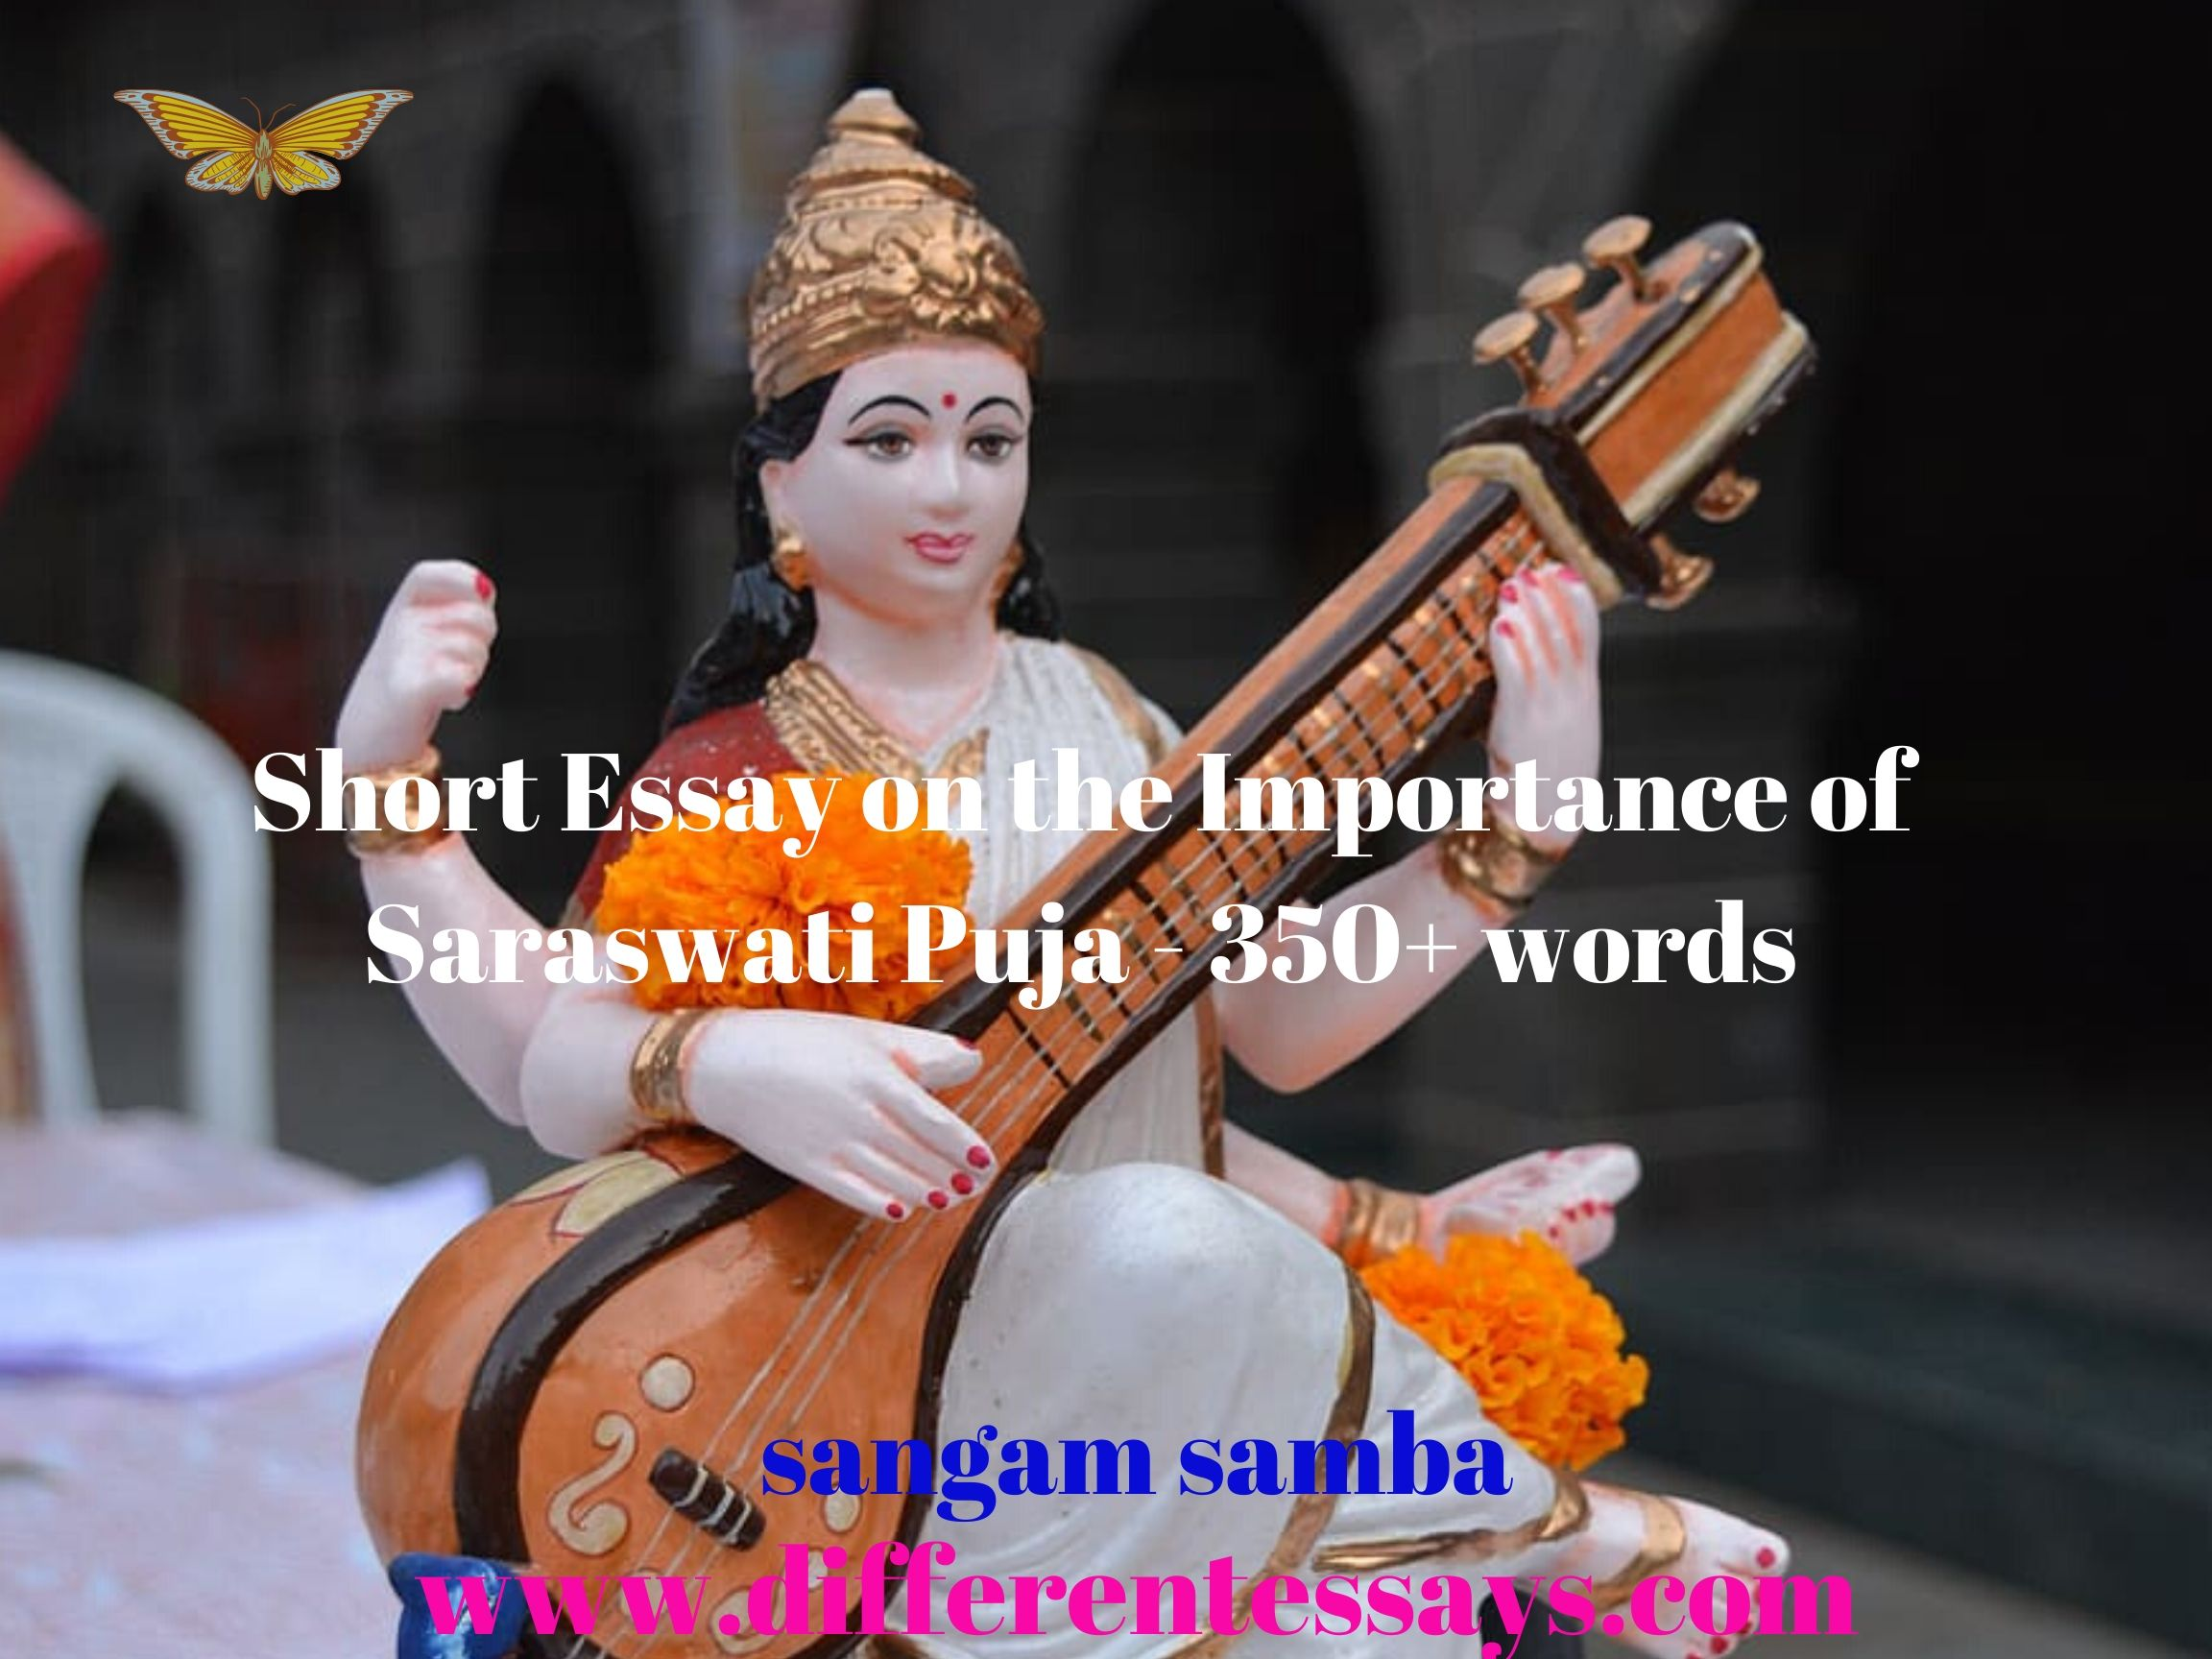 Short Essay on the Importance of Saraswati Puja - 350+ words